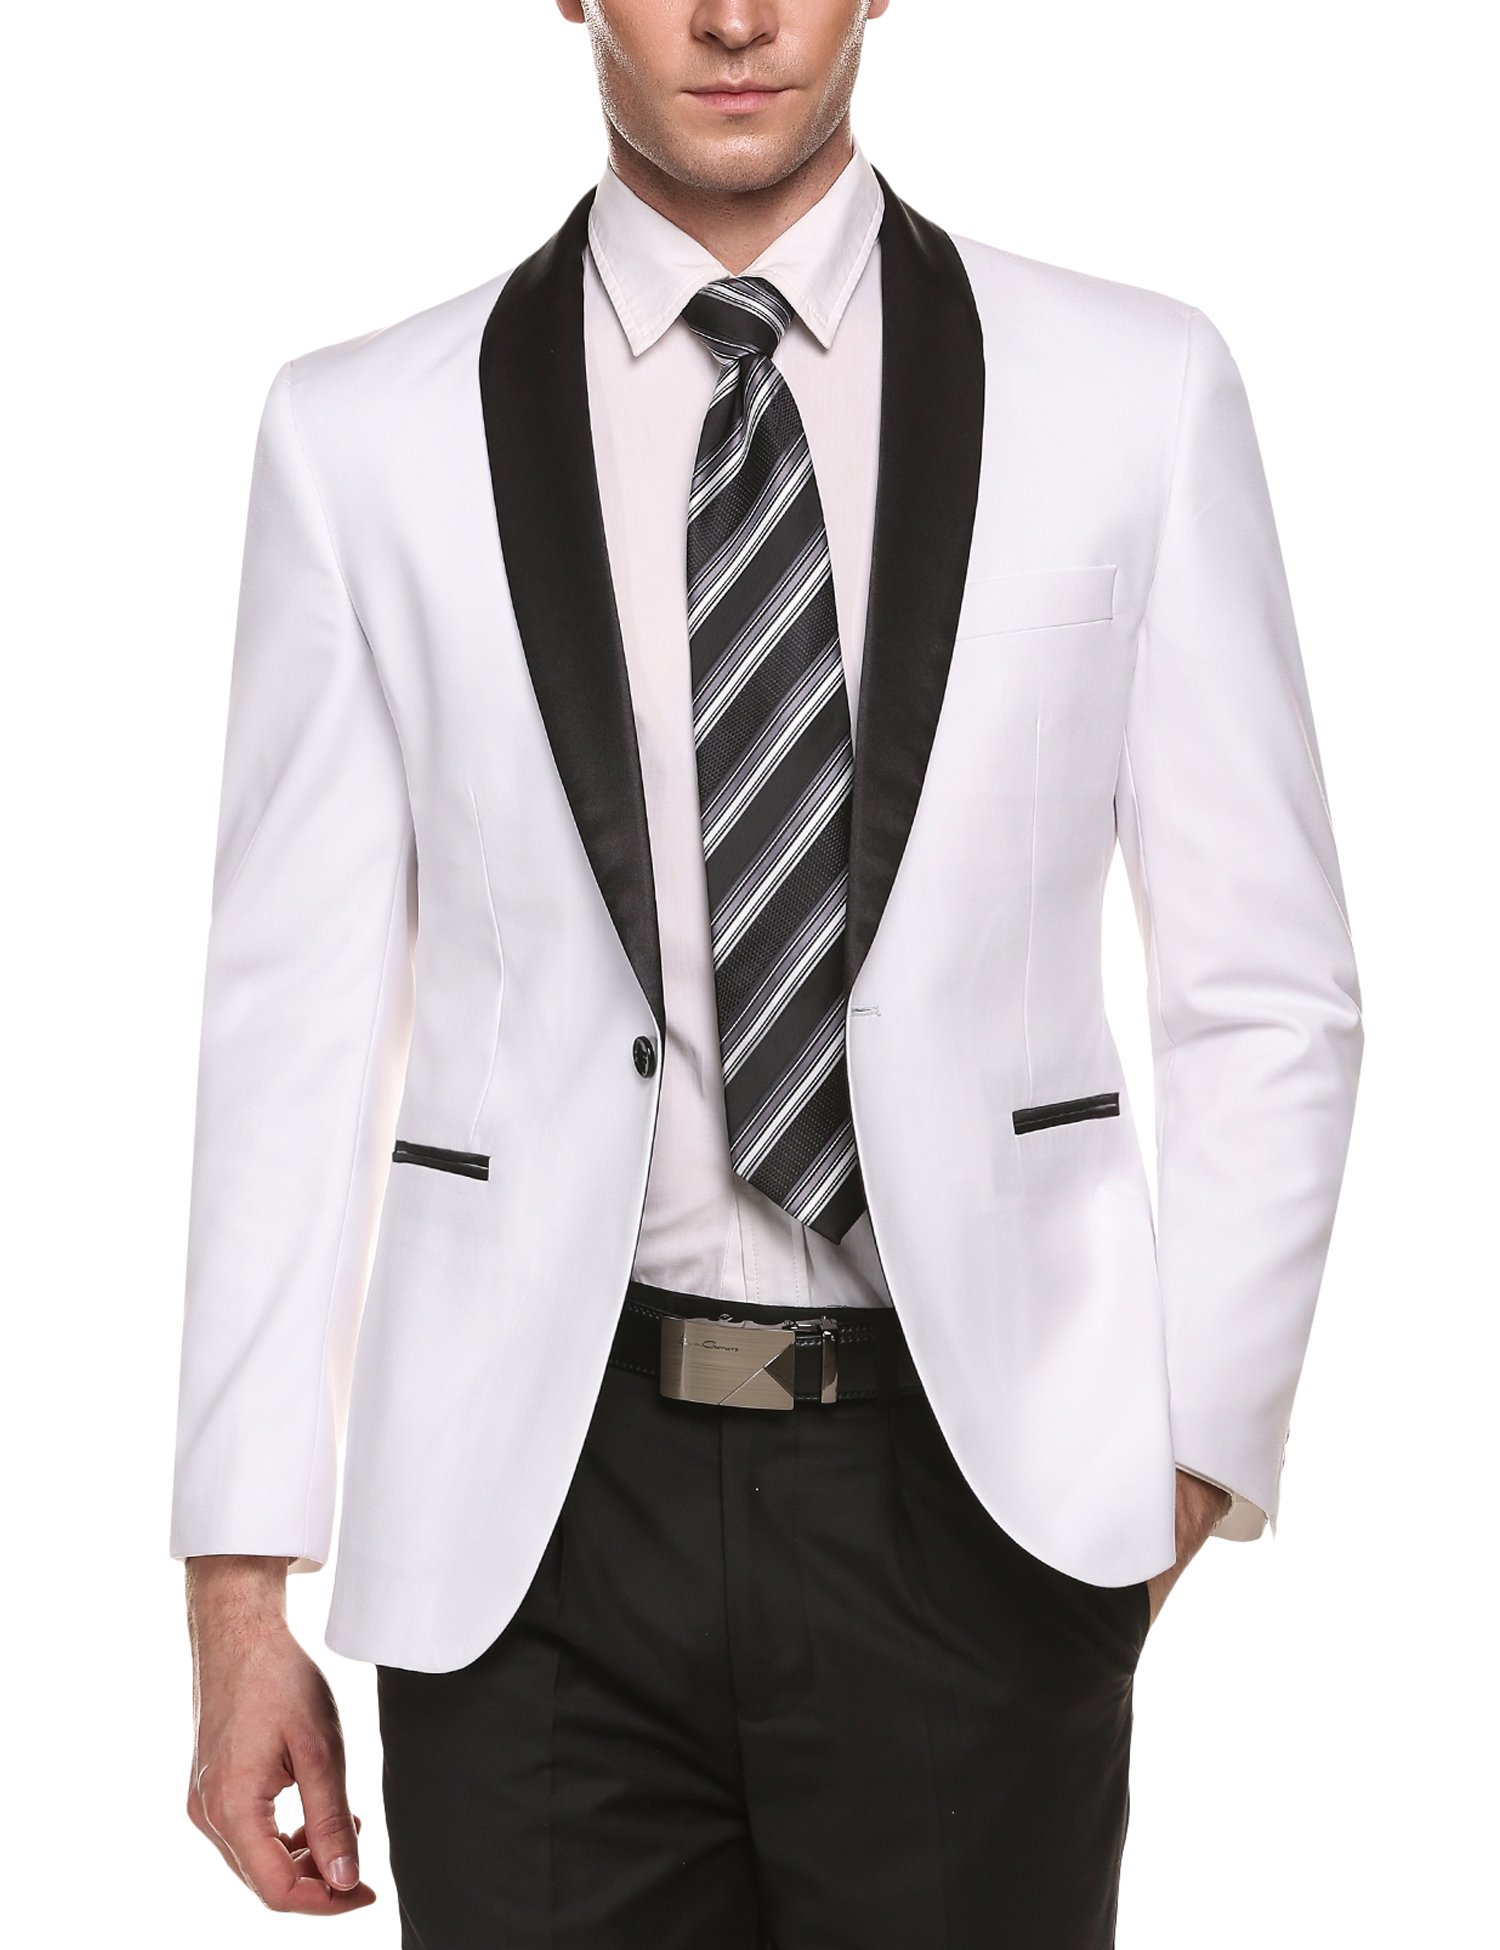 COOFANDY Men's Slim Fit Stylish Casual One-Button Suit Coat Jacket Business Blazers,White,Small by COOFANDY